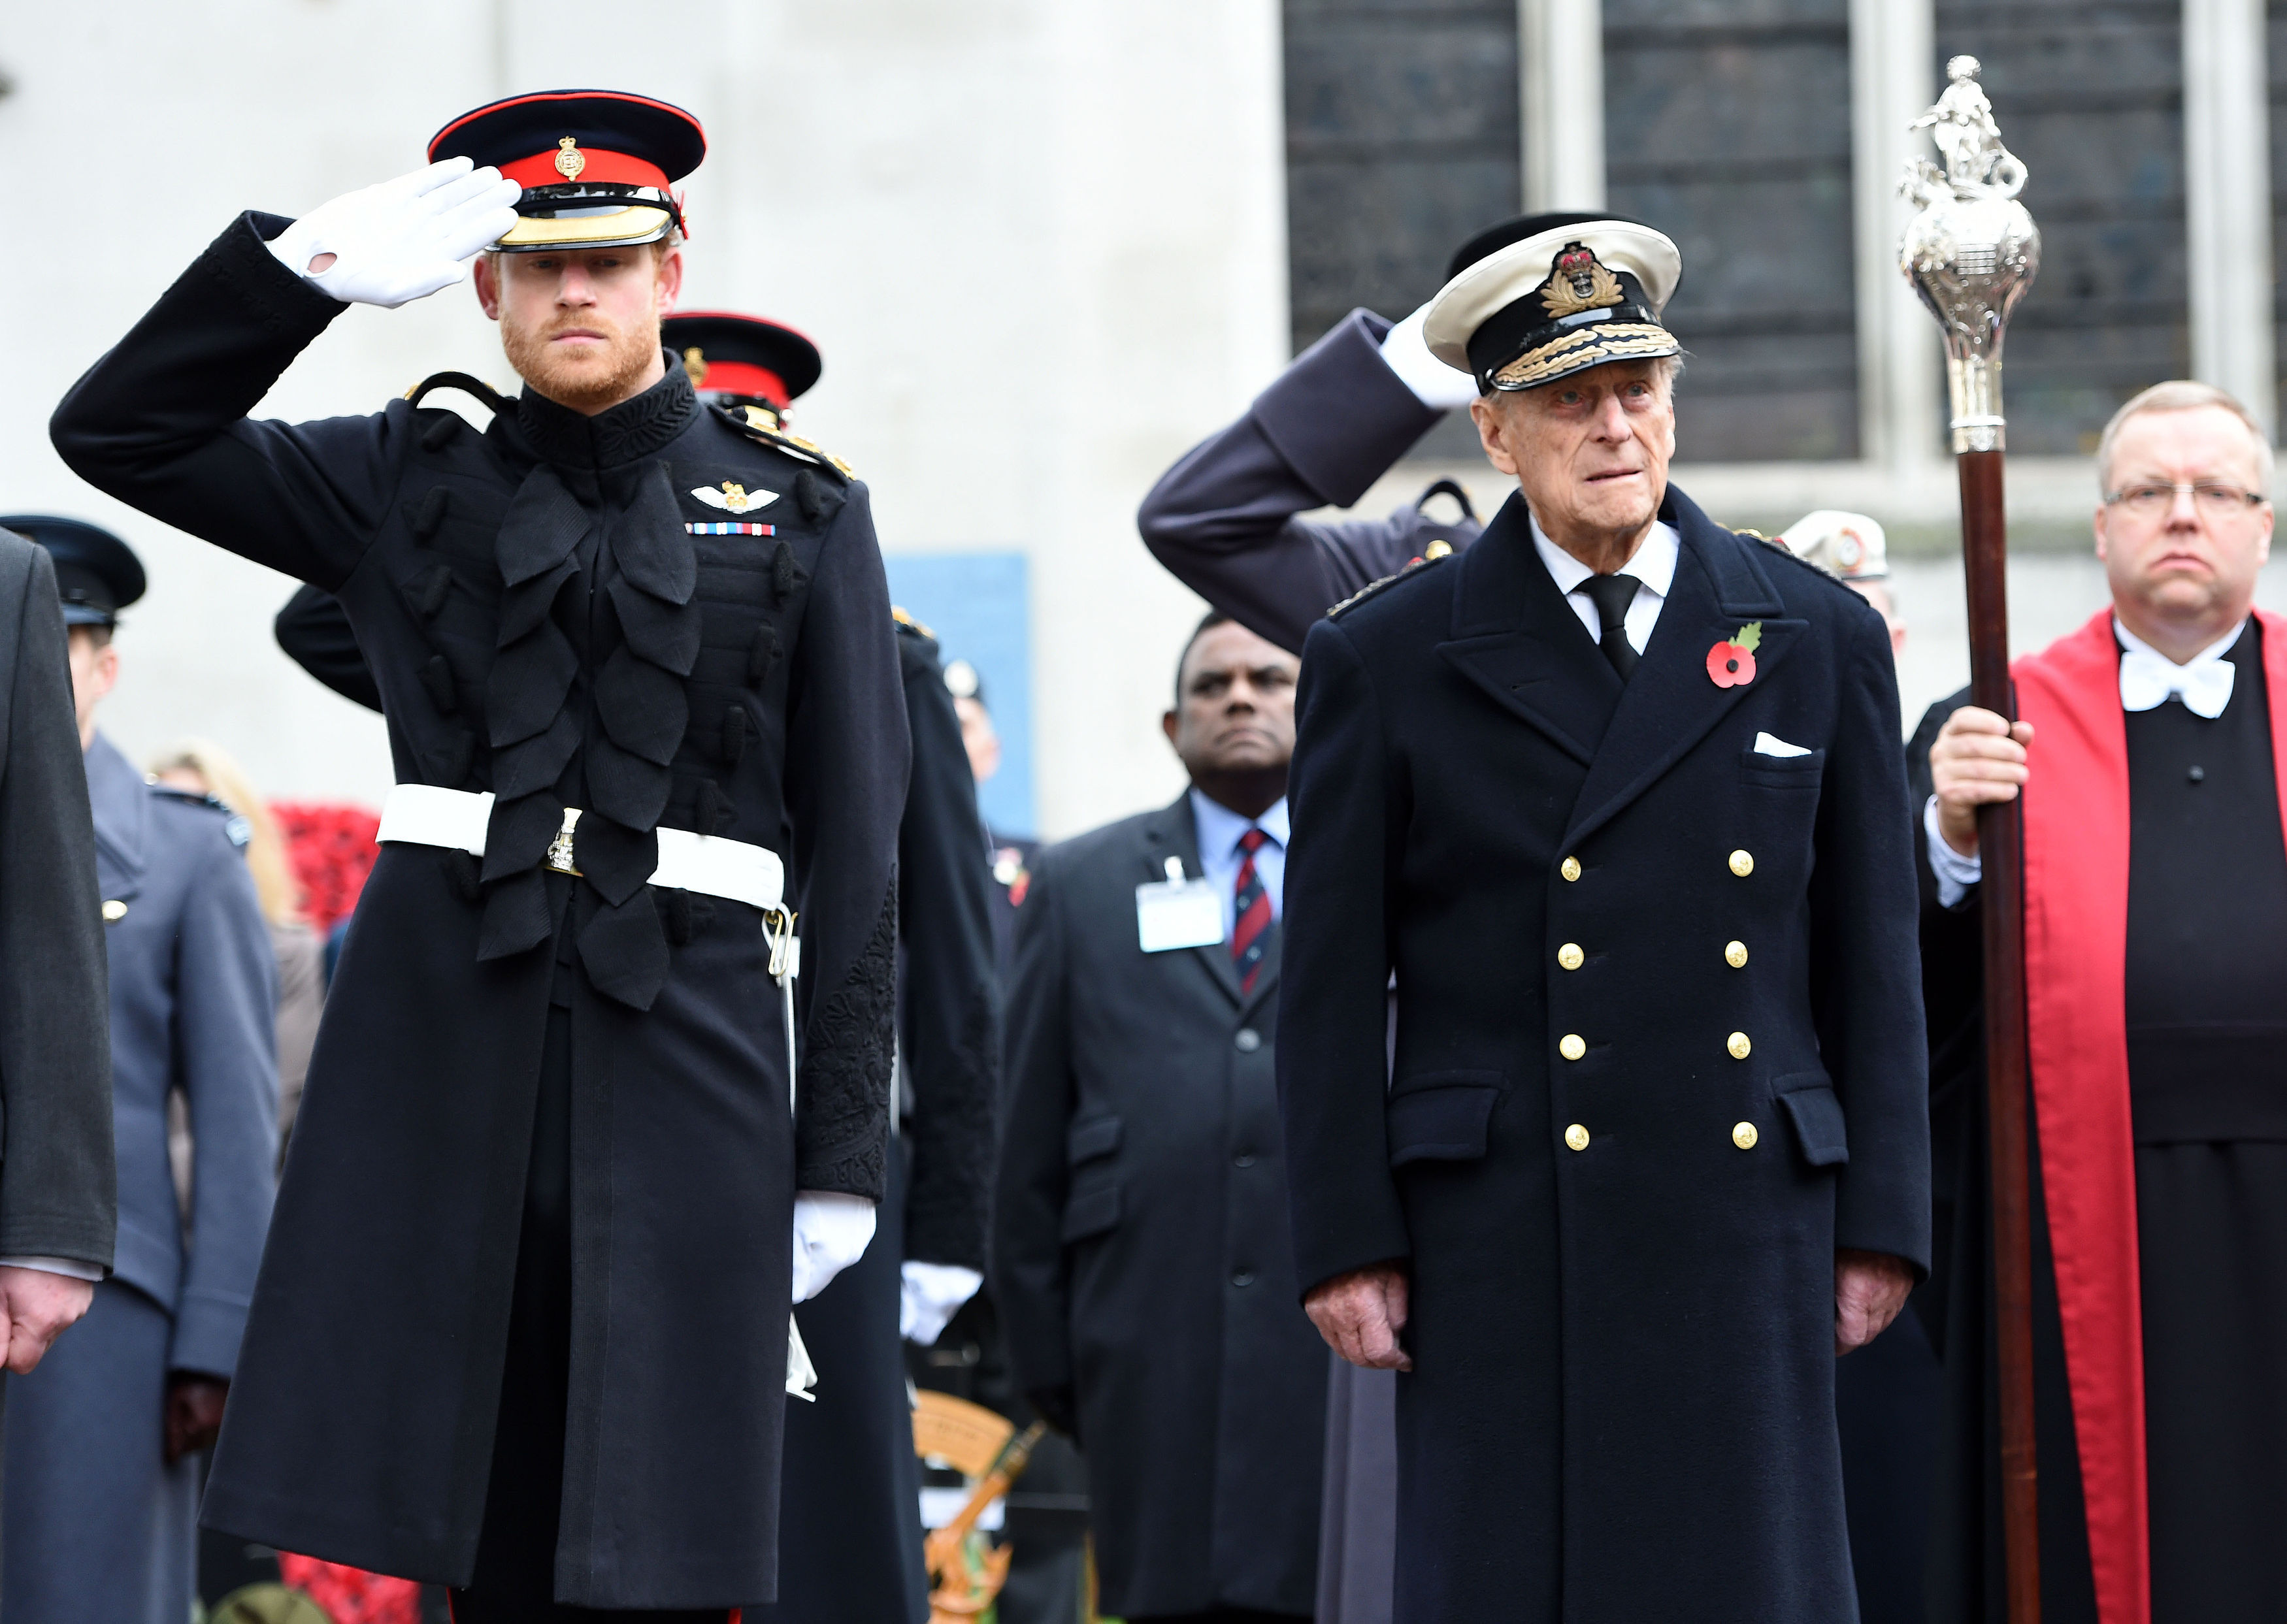 Remembrance 2016 | The Royal Family